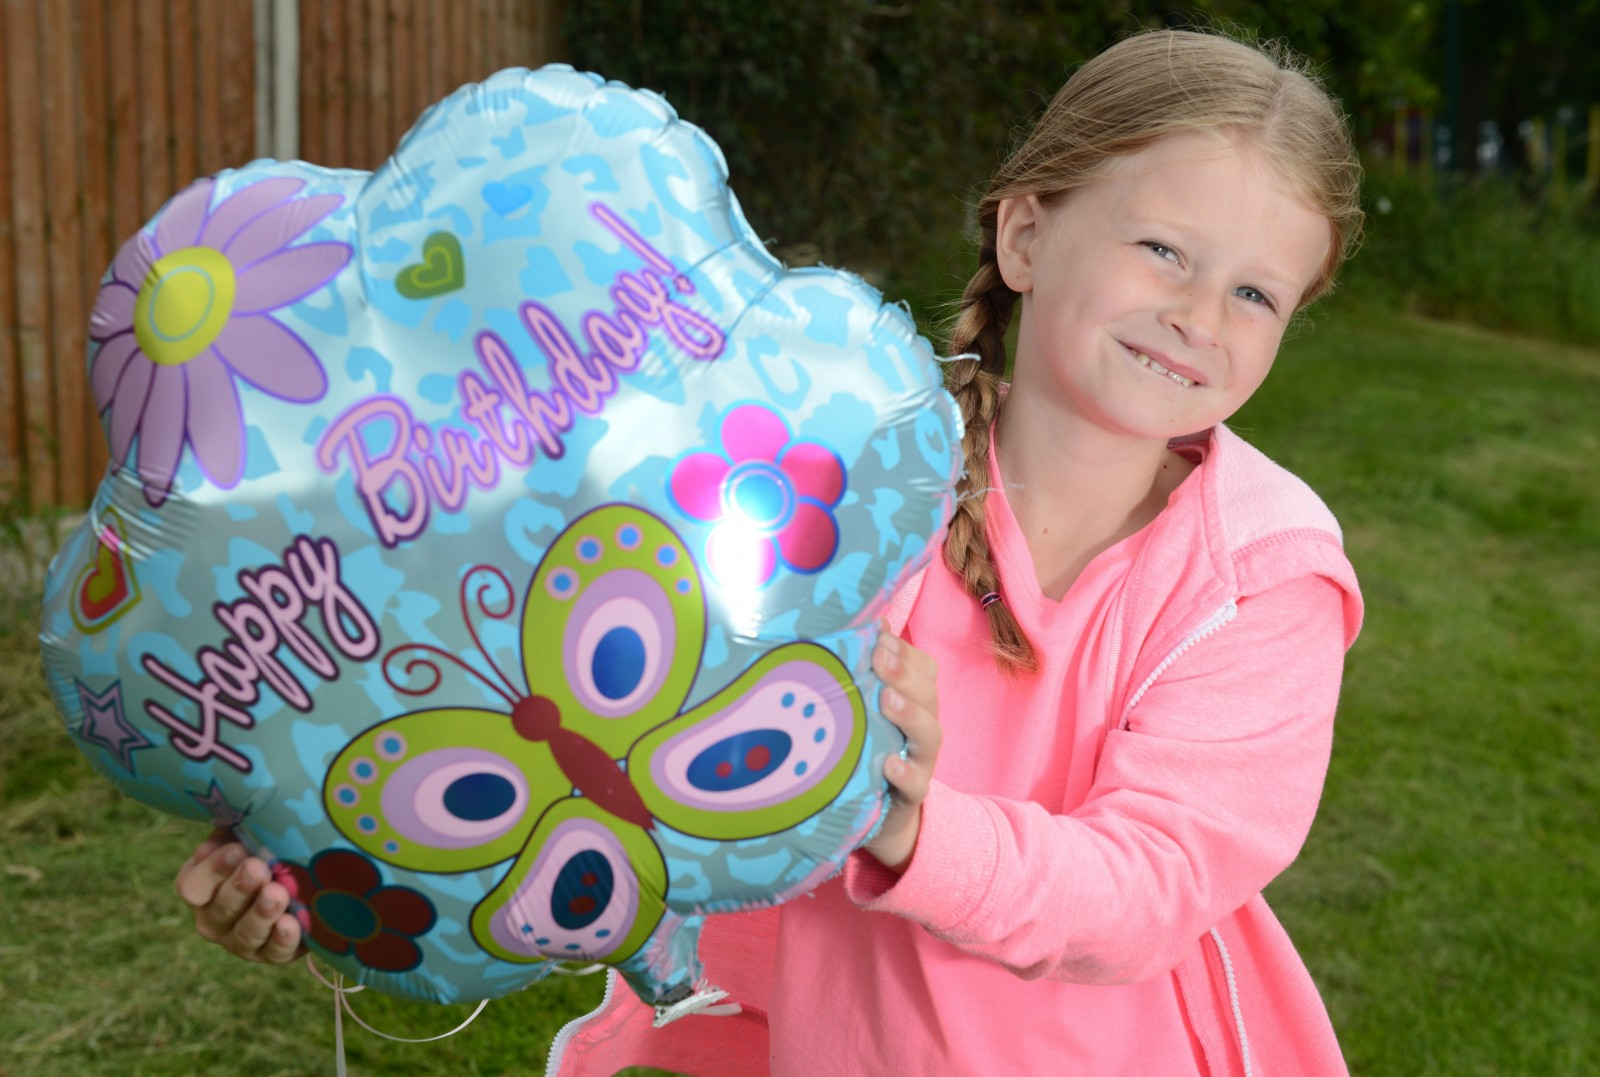 A £1 balloon with a message inside travelled 900 miles to GERMANY after little Lilly let it go in her garden